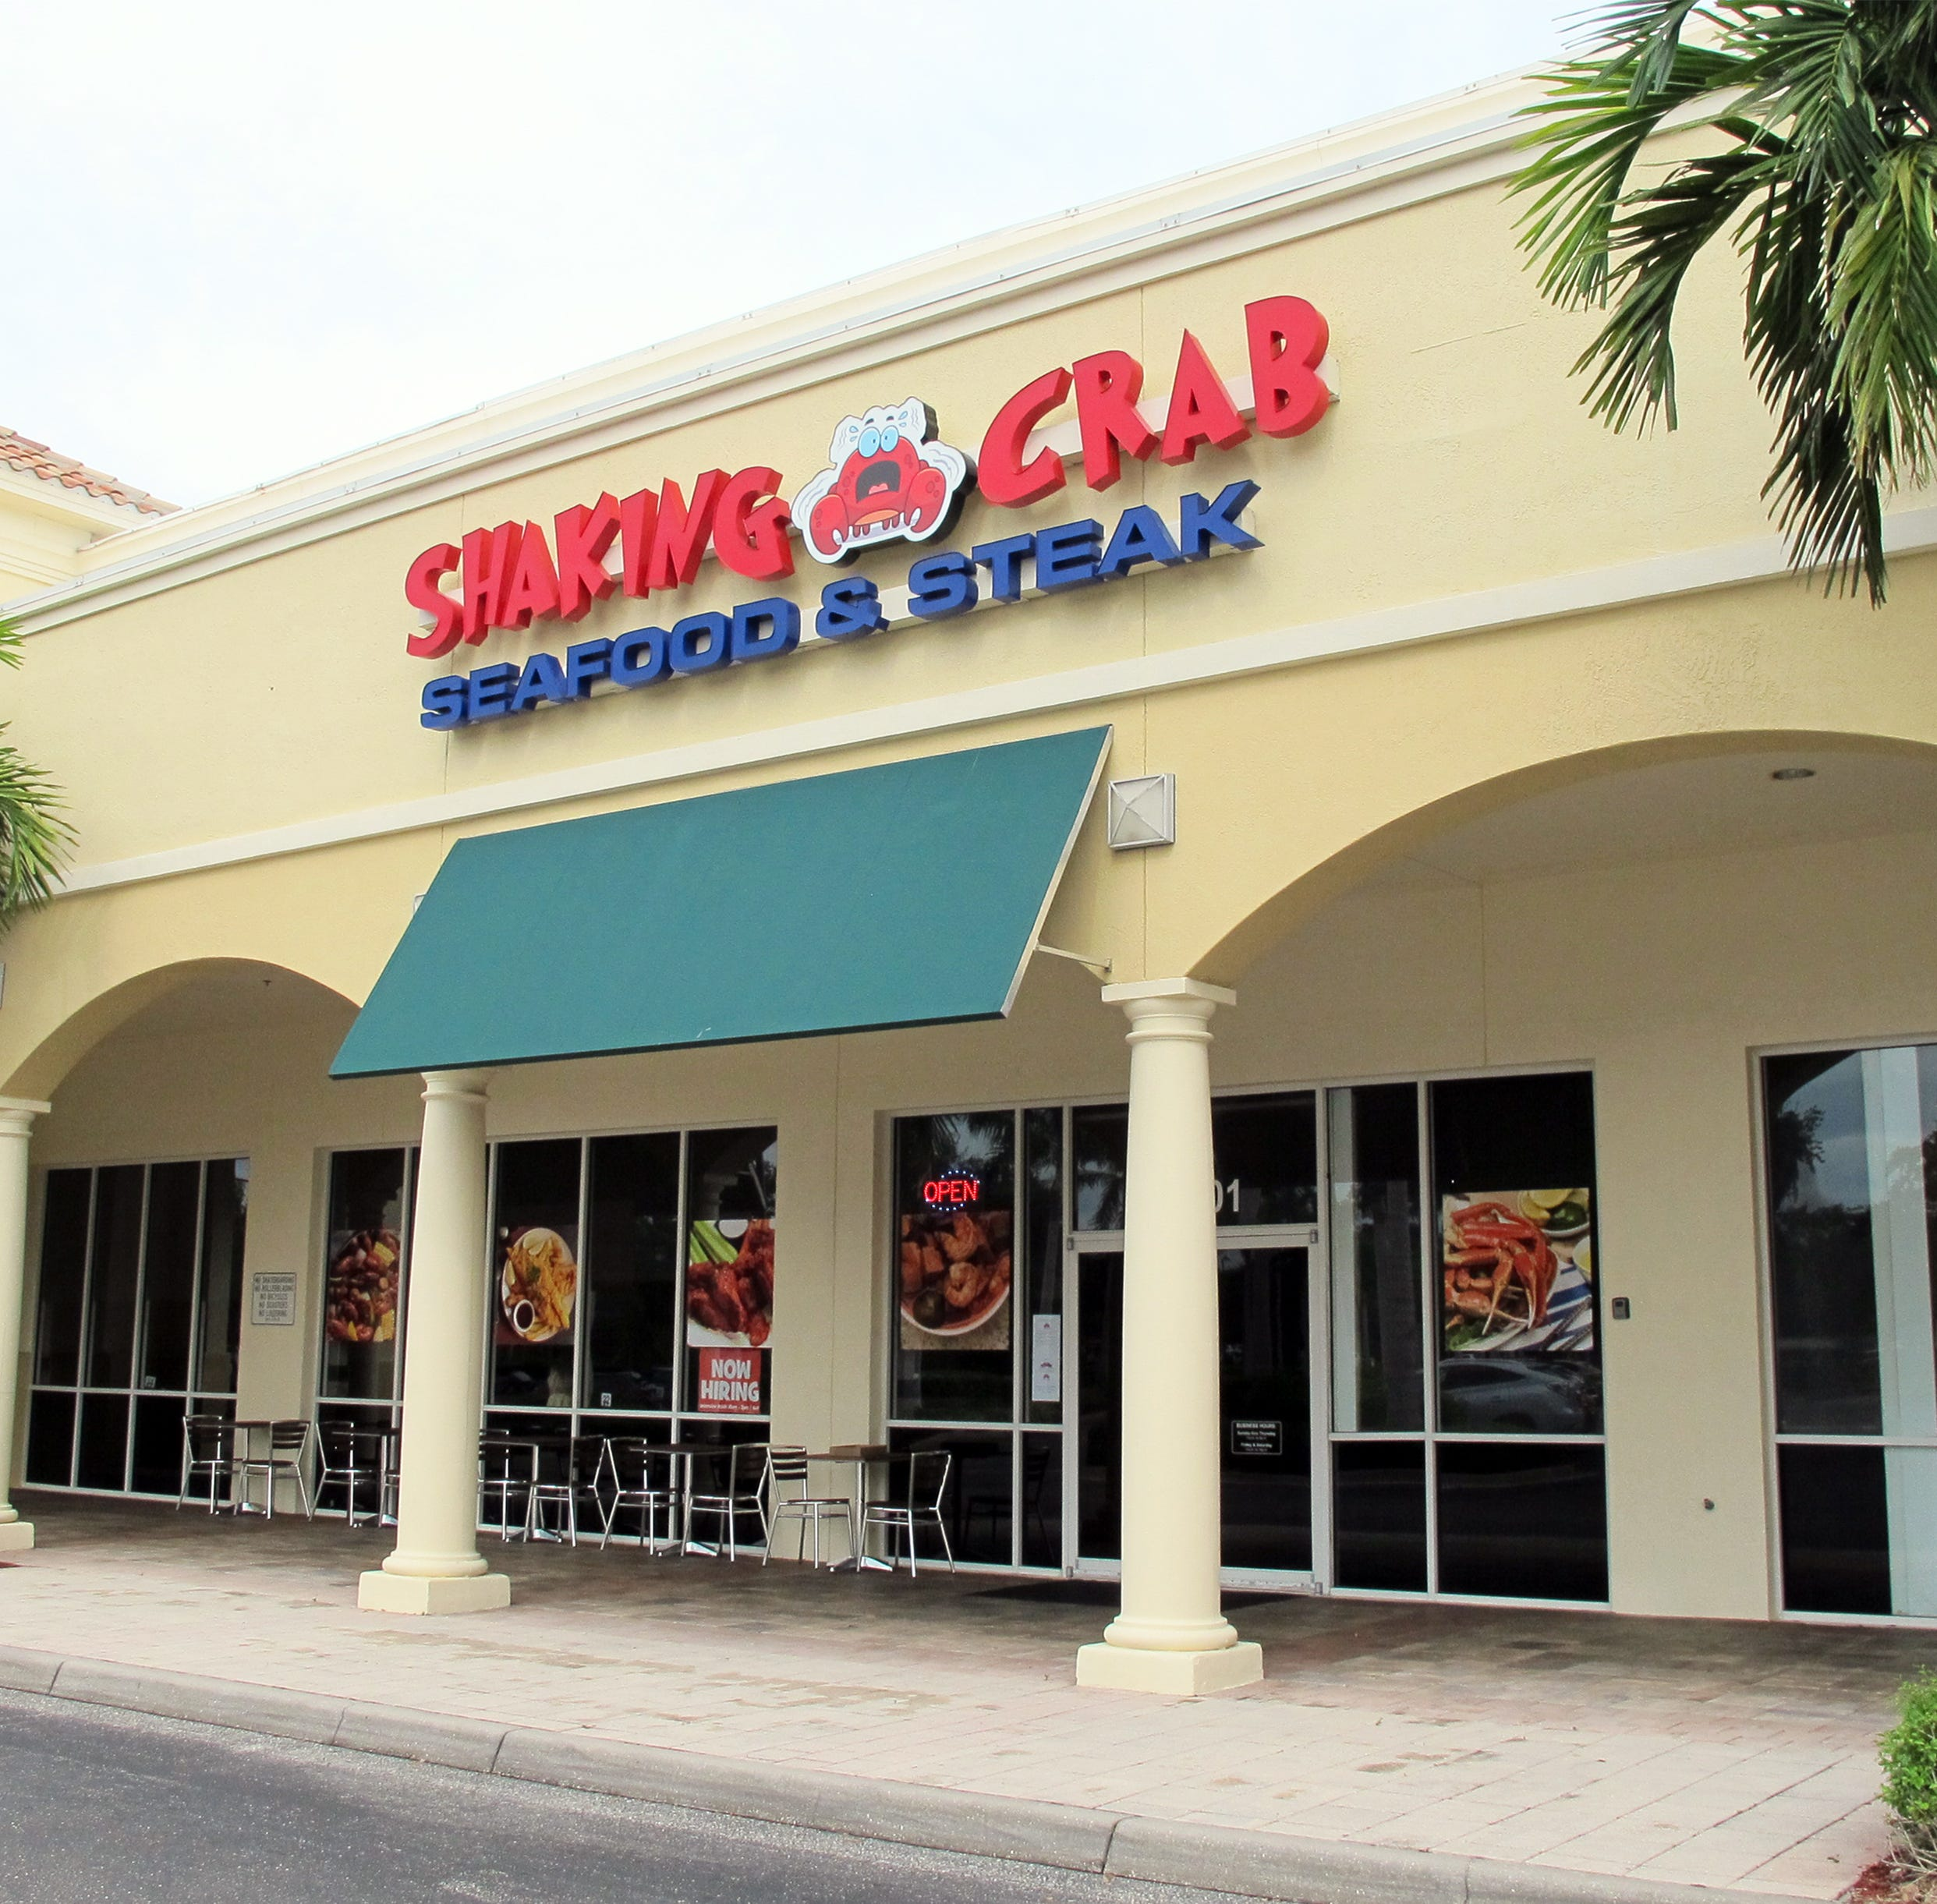 In the Know: New Shaking Crab serves Cajun-style seafood in Bonita Springs